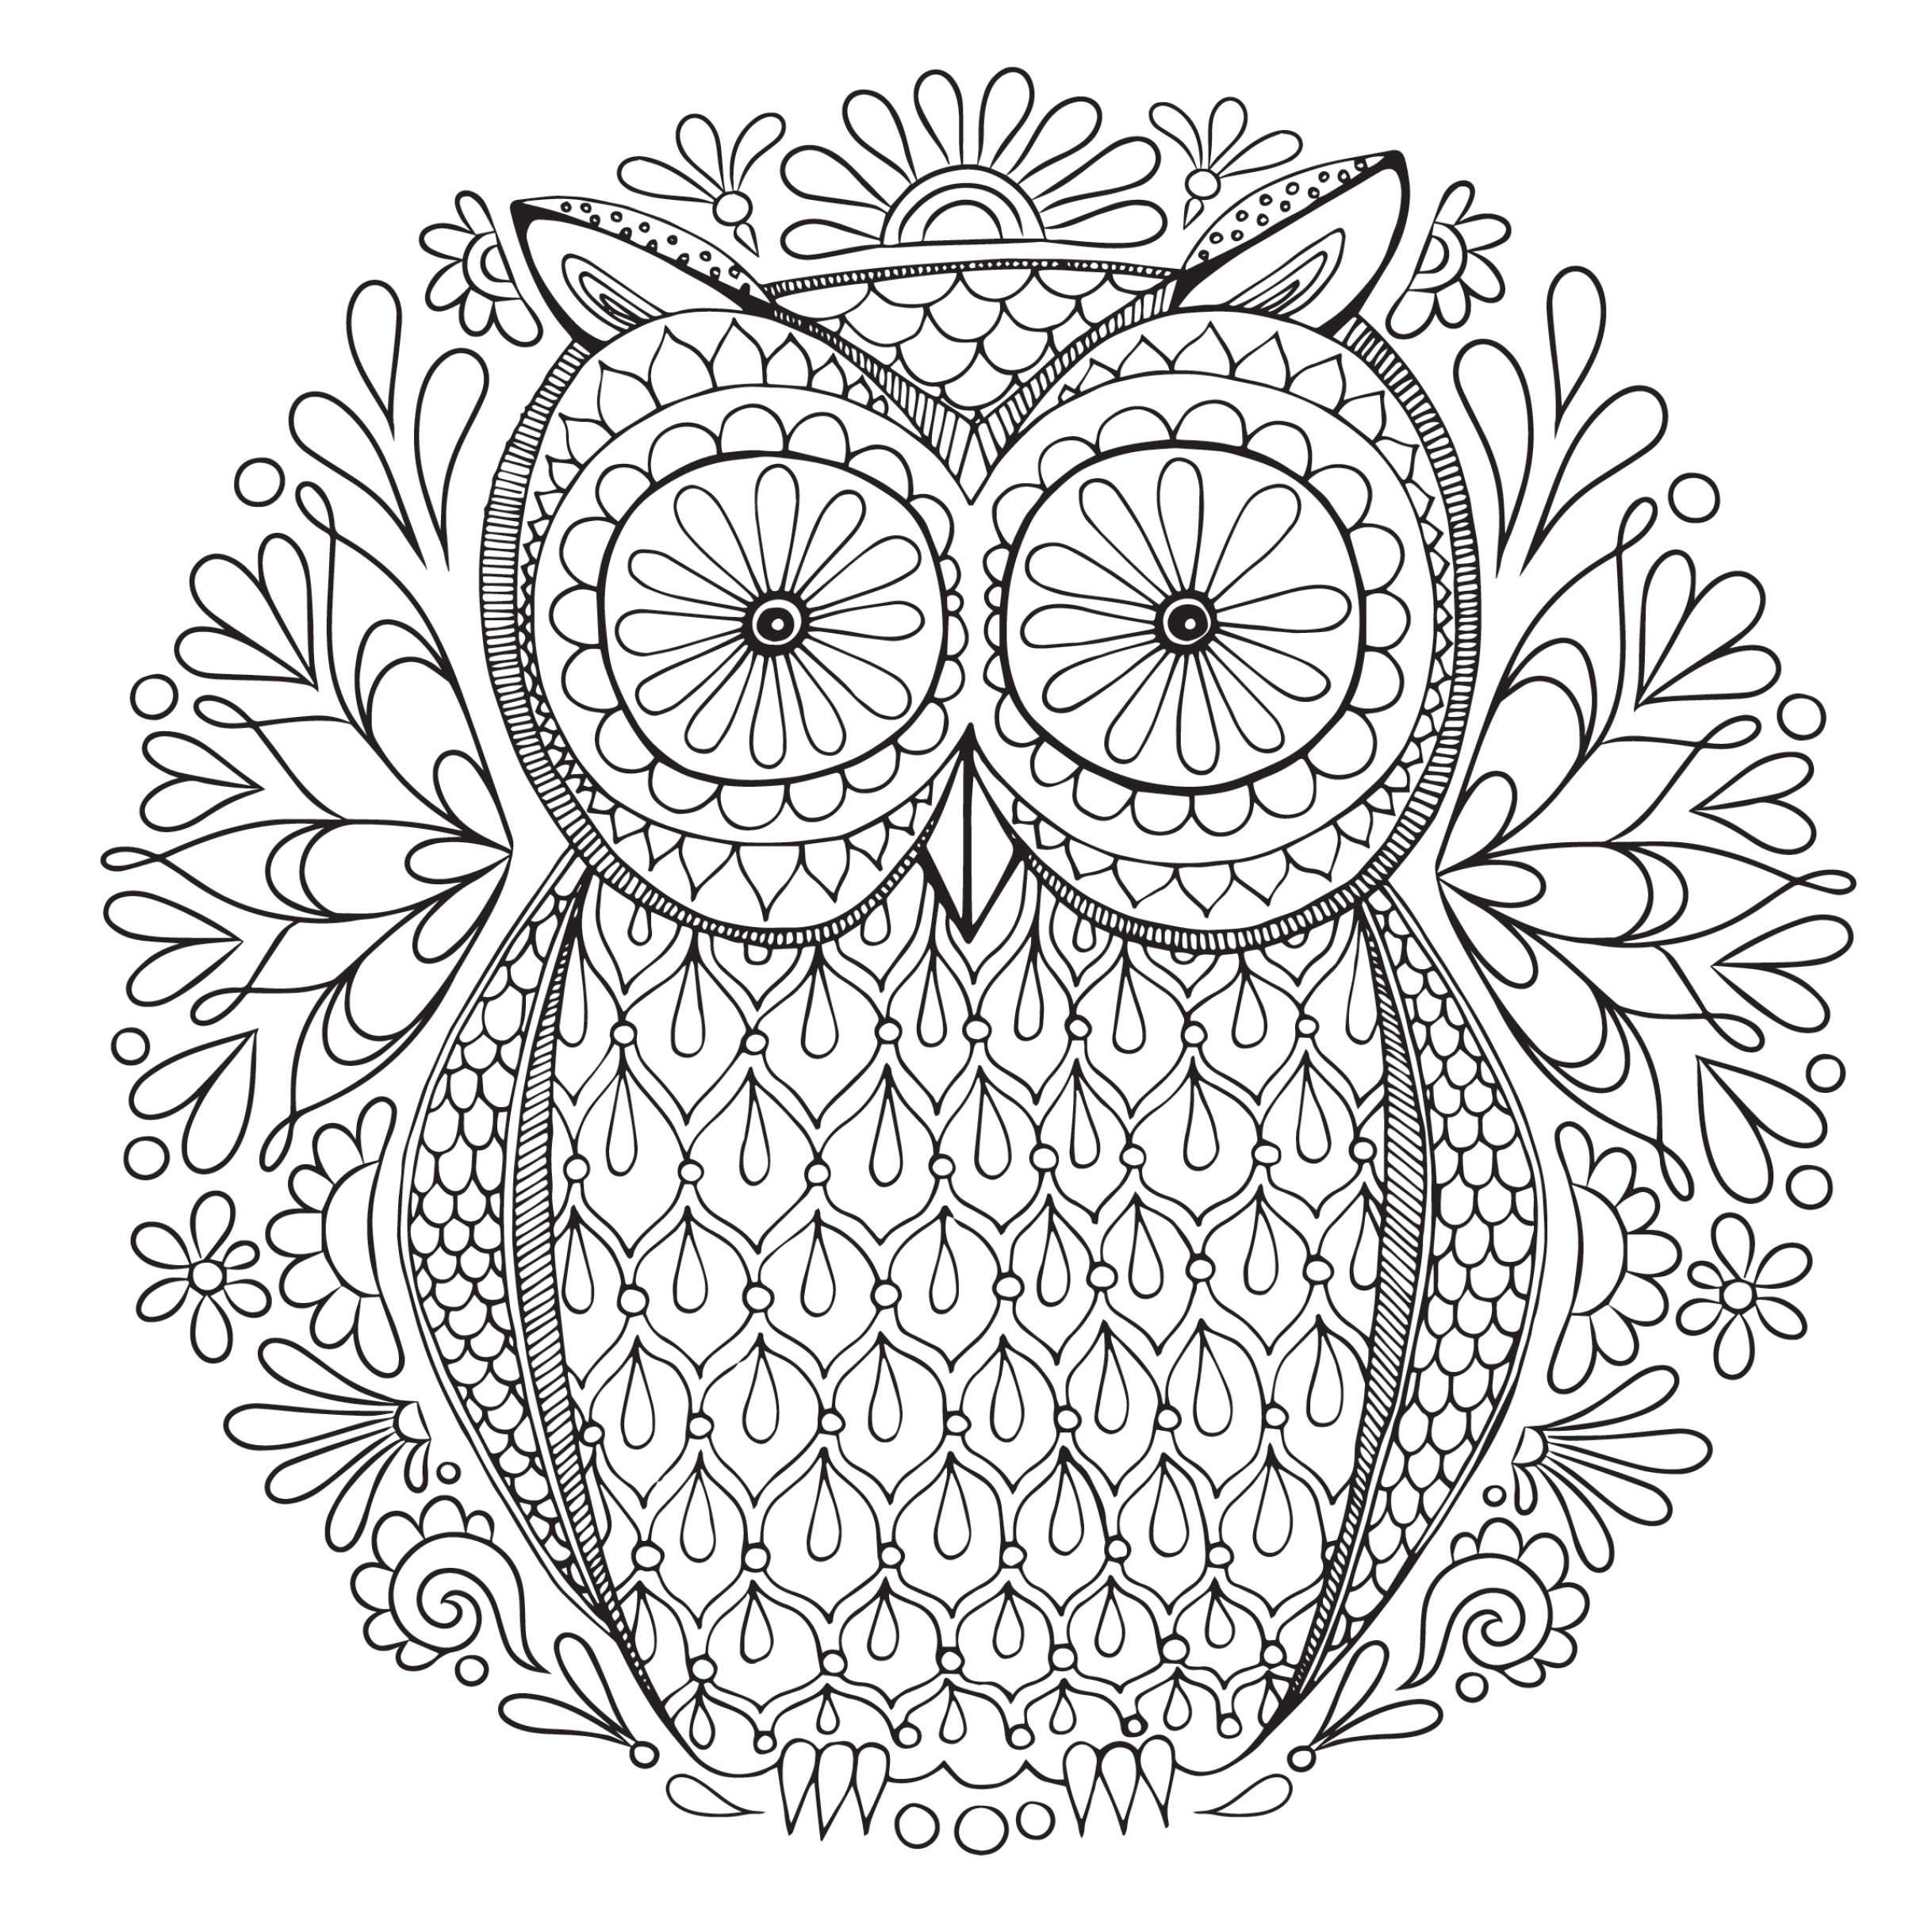 Free, Printable Coloring Pages For Adults - Free Printable Coloring Pages For Adults Only